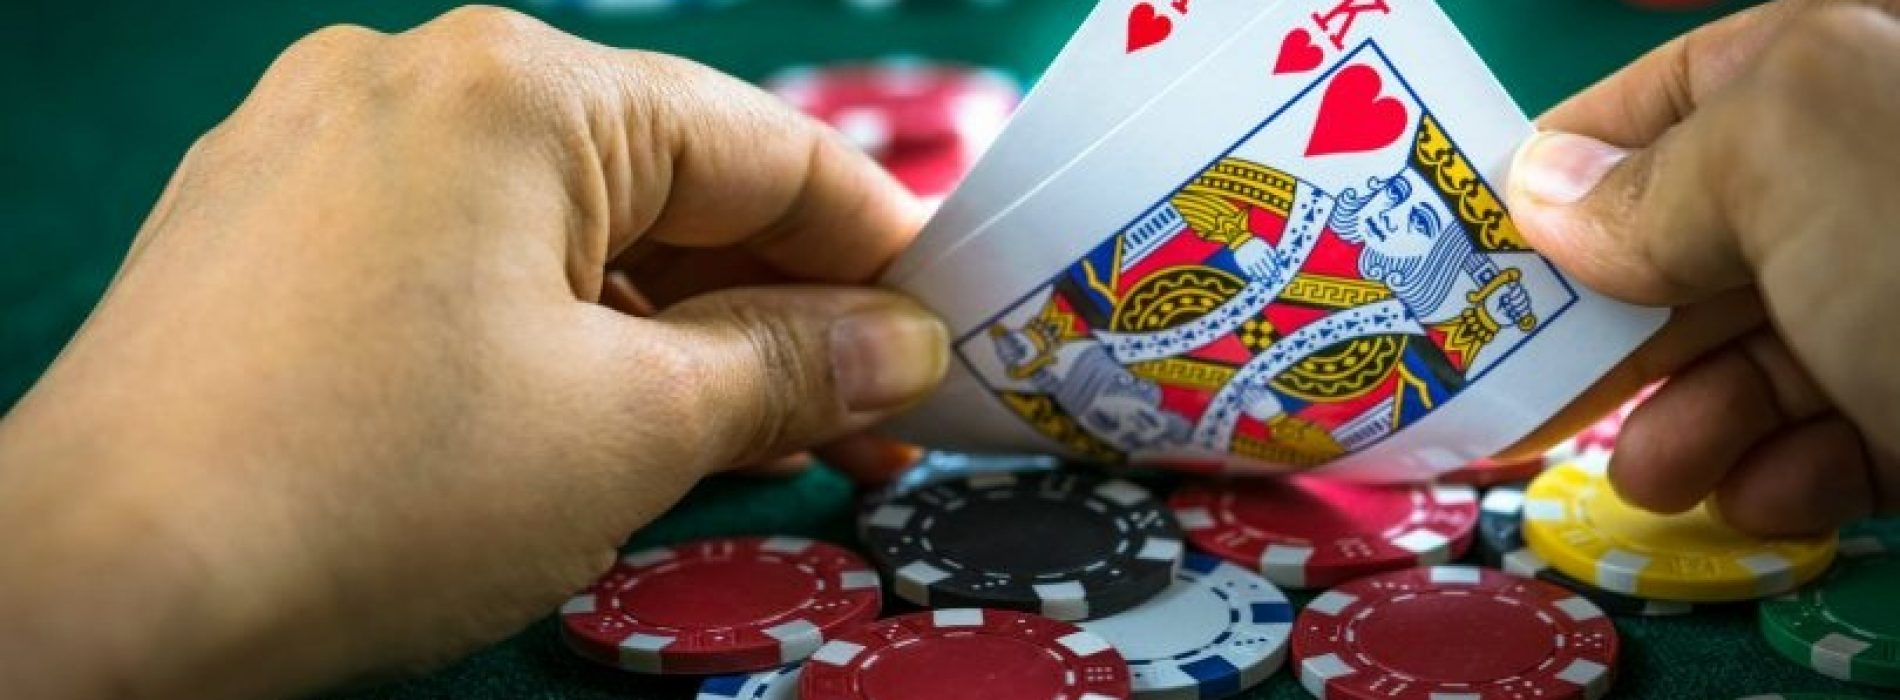 What are the positive aspects of gambling?